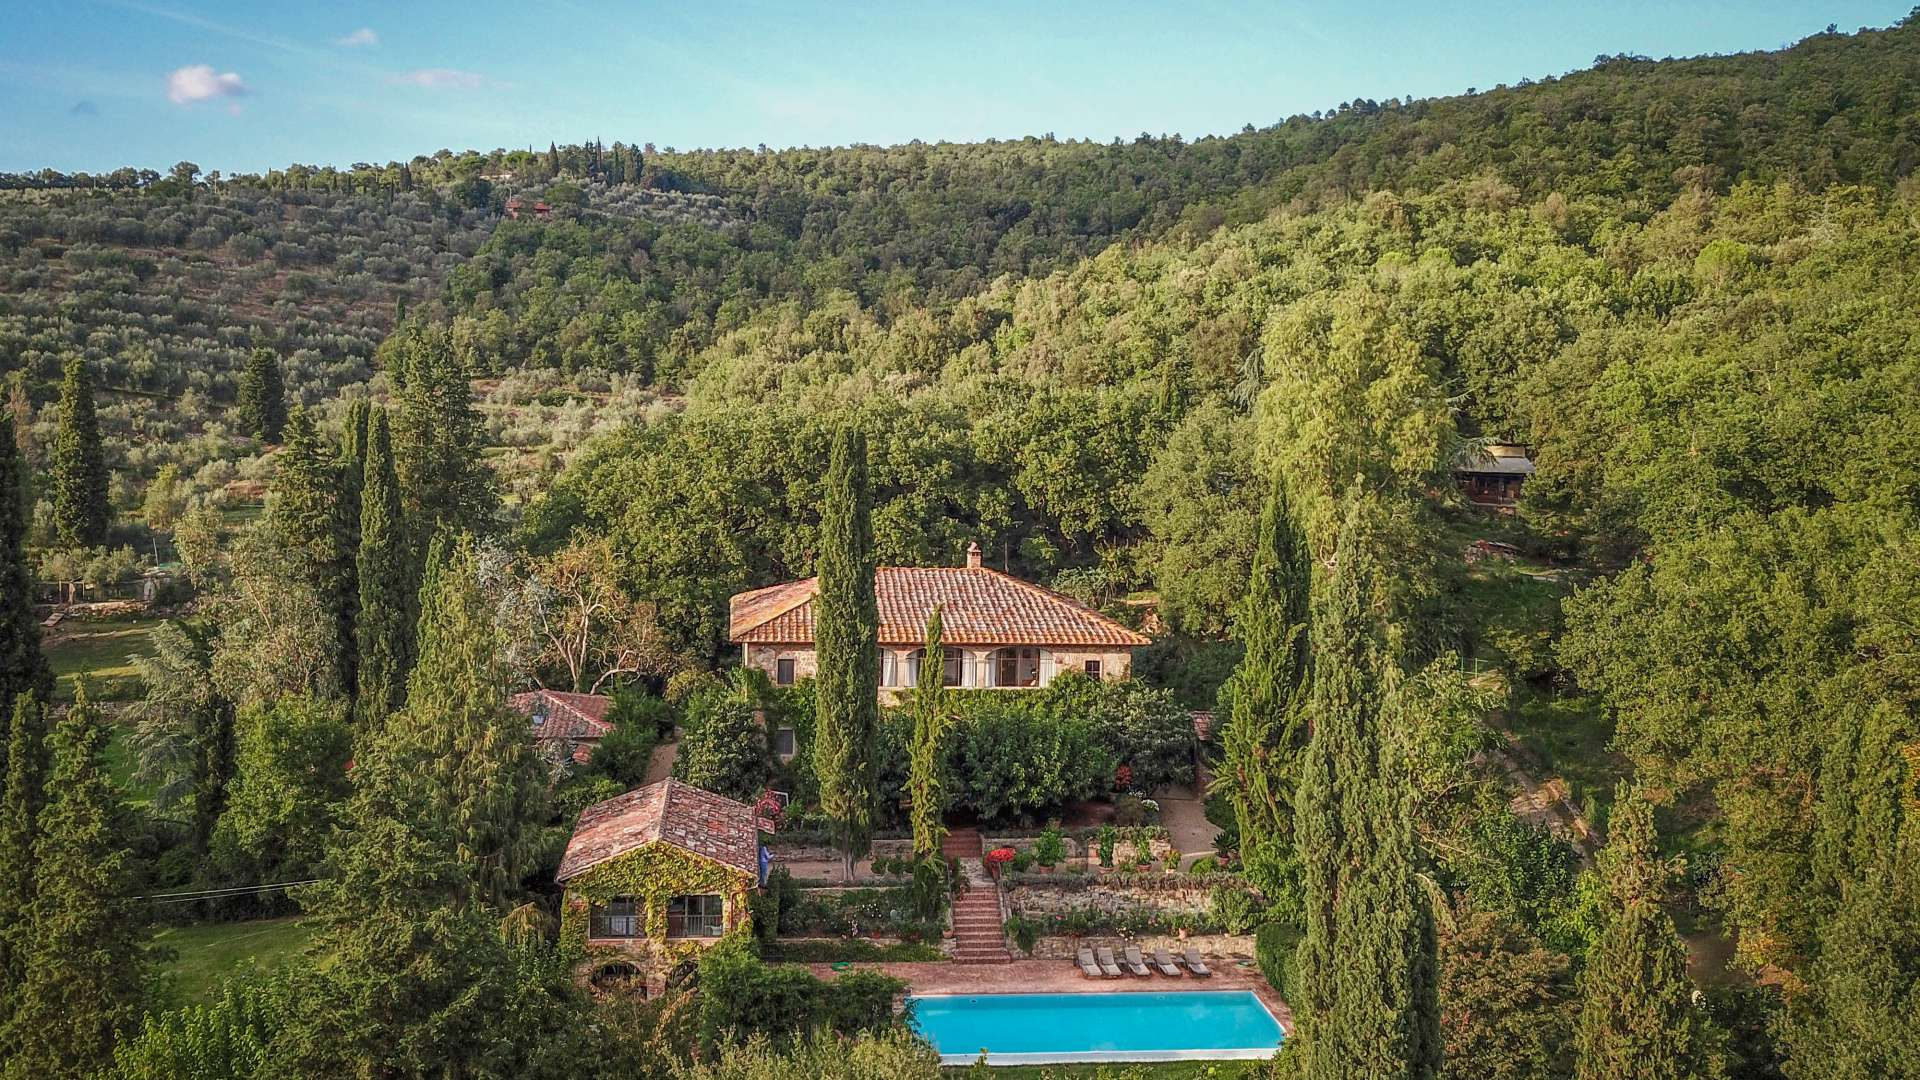 LUXURY FARMHOUSE FOR SALE IN TUSCANY